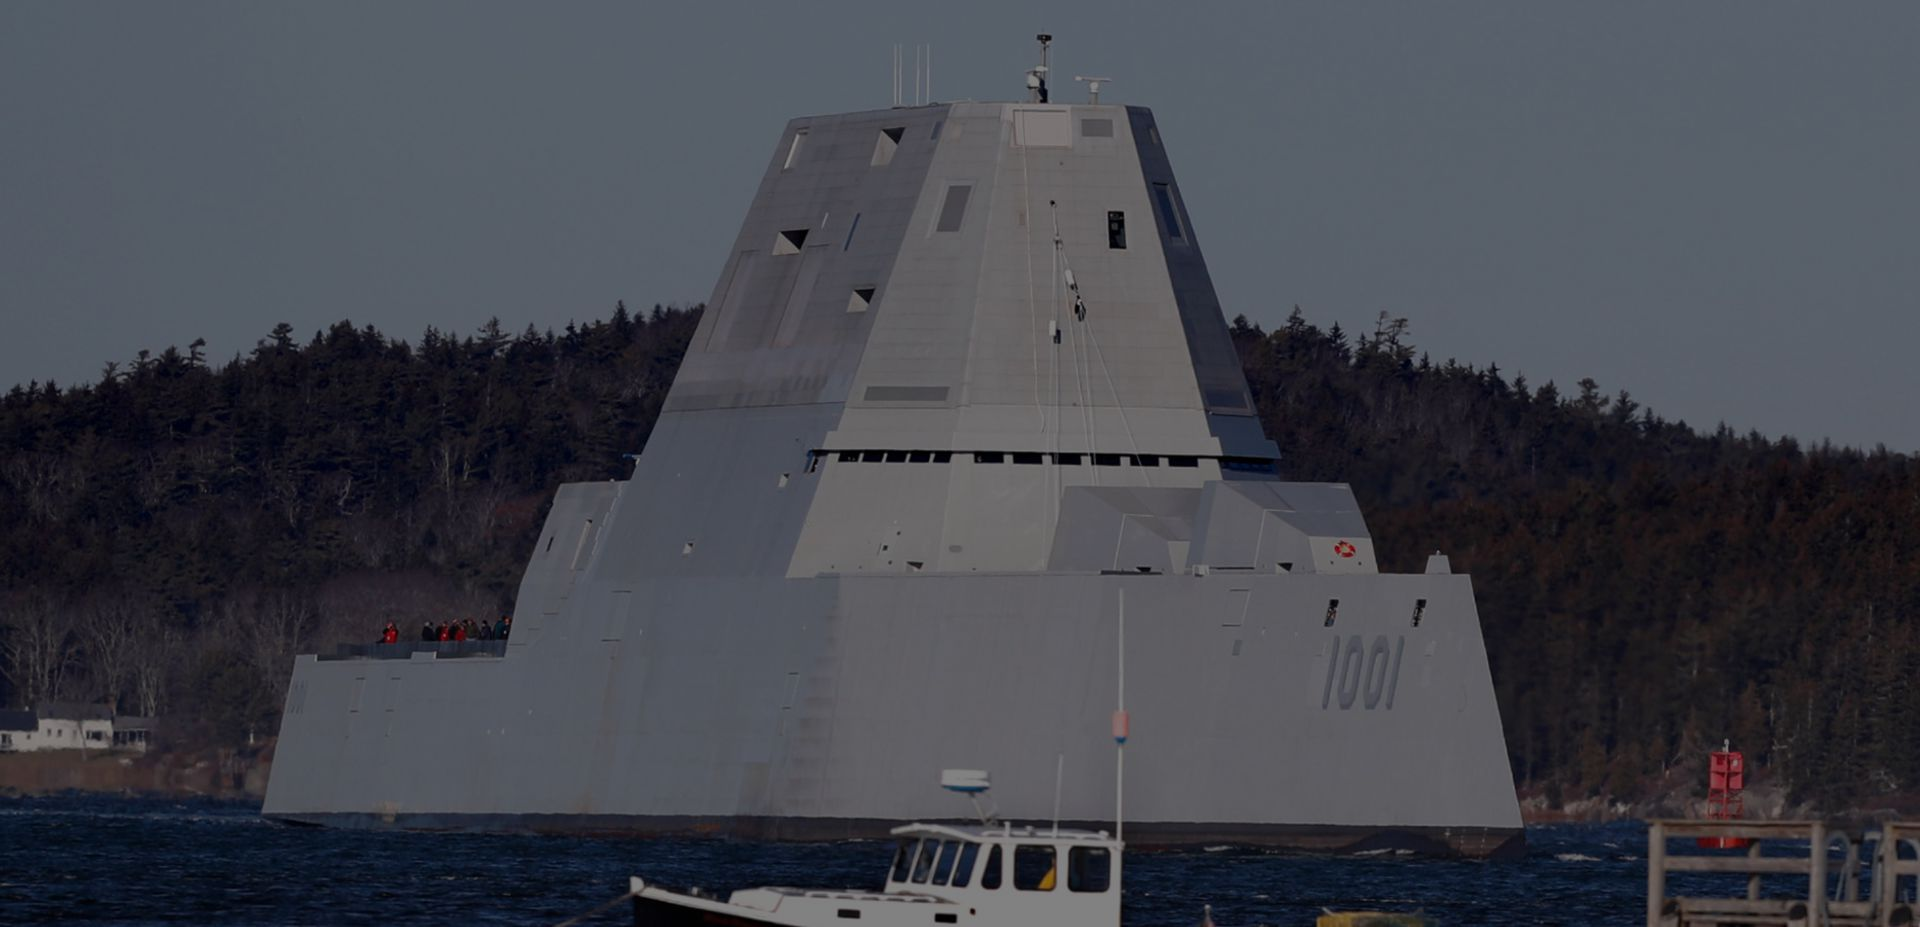 Эсминец USS Michael Monsoor типа Zumwalt